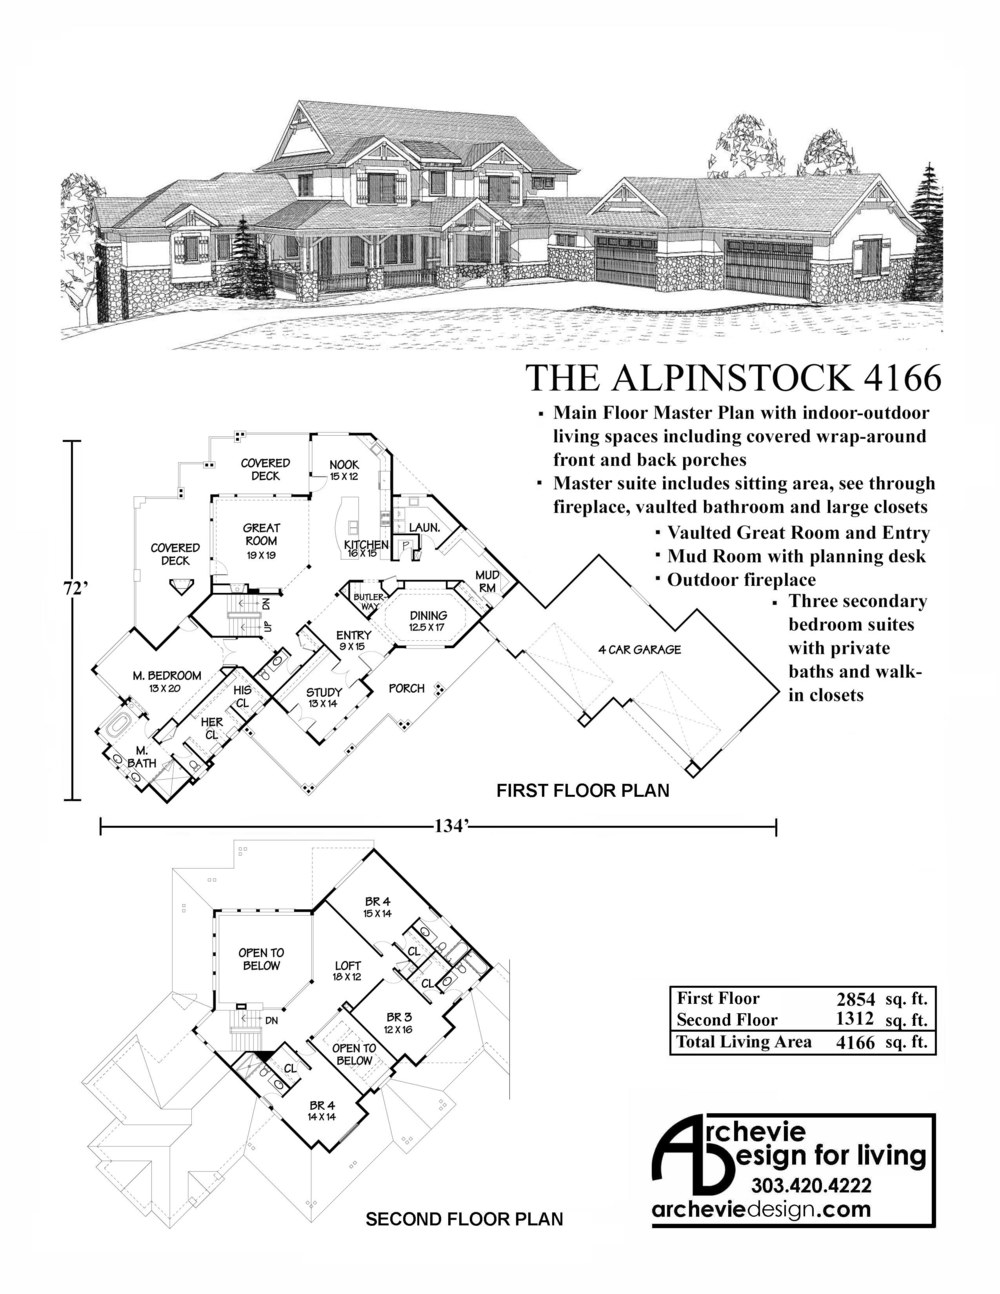 ALPINGSTOCK4166.jpg